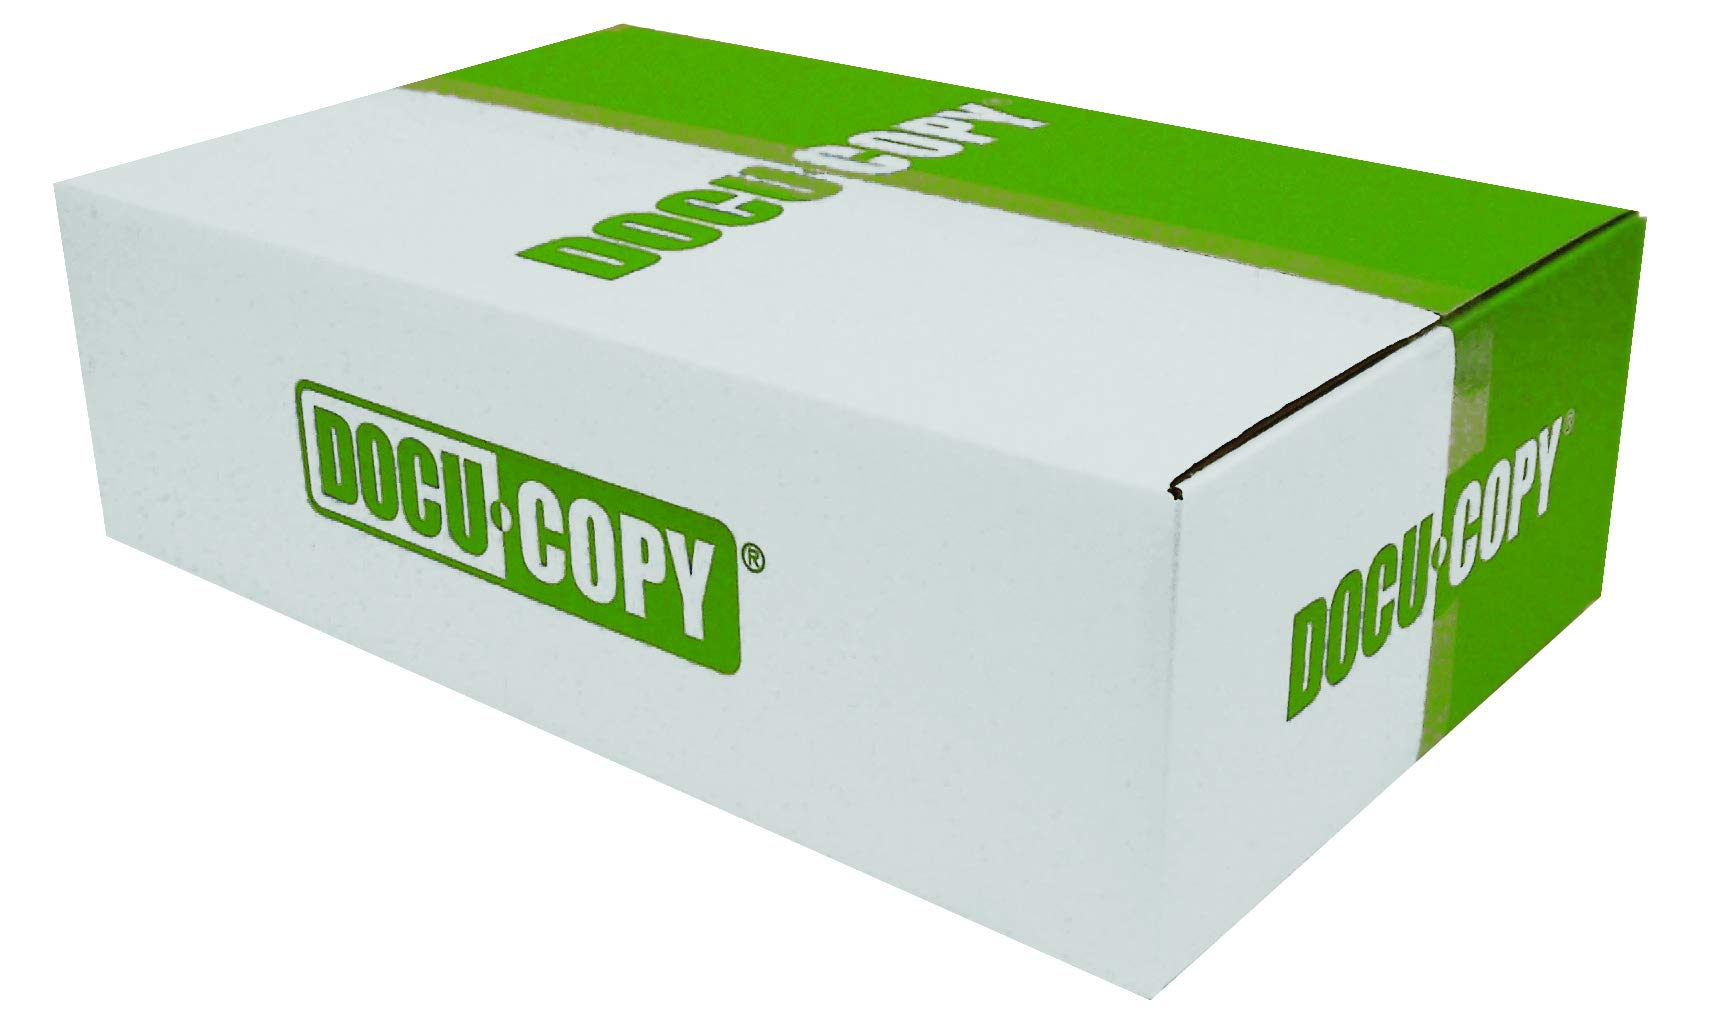 DocuCopy Printable ID/Membership Cards 1 Card Punch Out Style